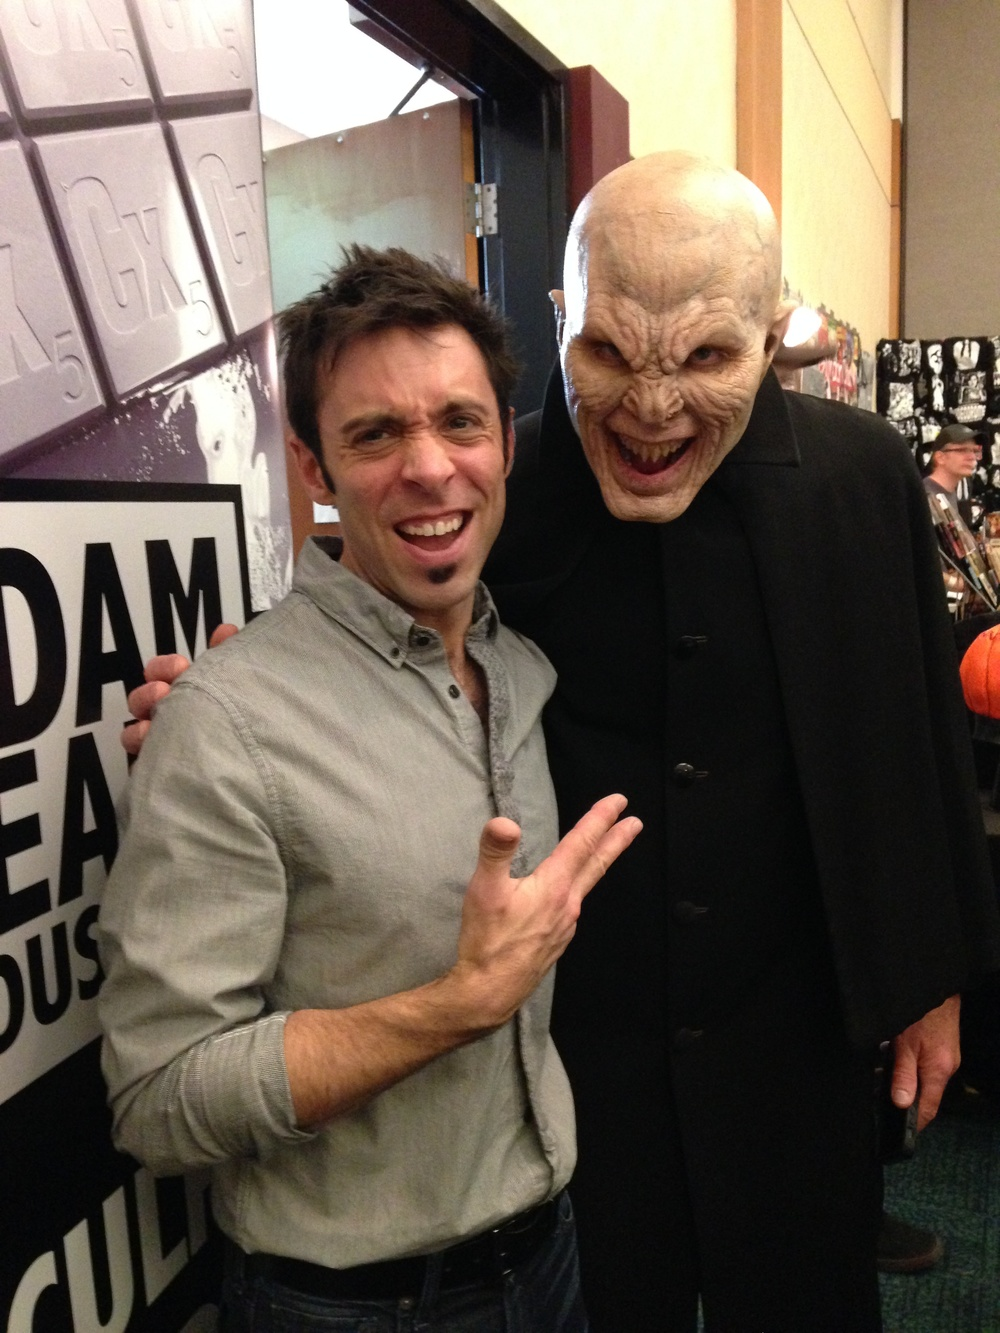 Adam Beane with Matt Cable as The Master from Buffy the Vampire Slayer.